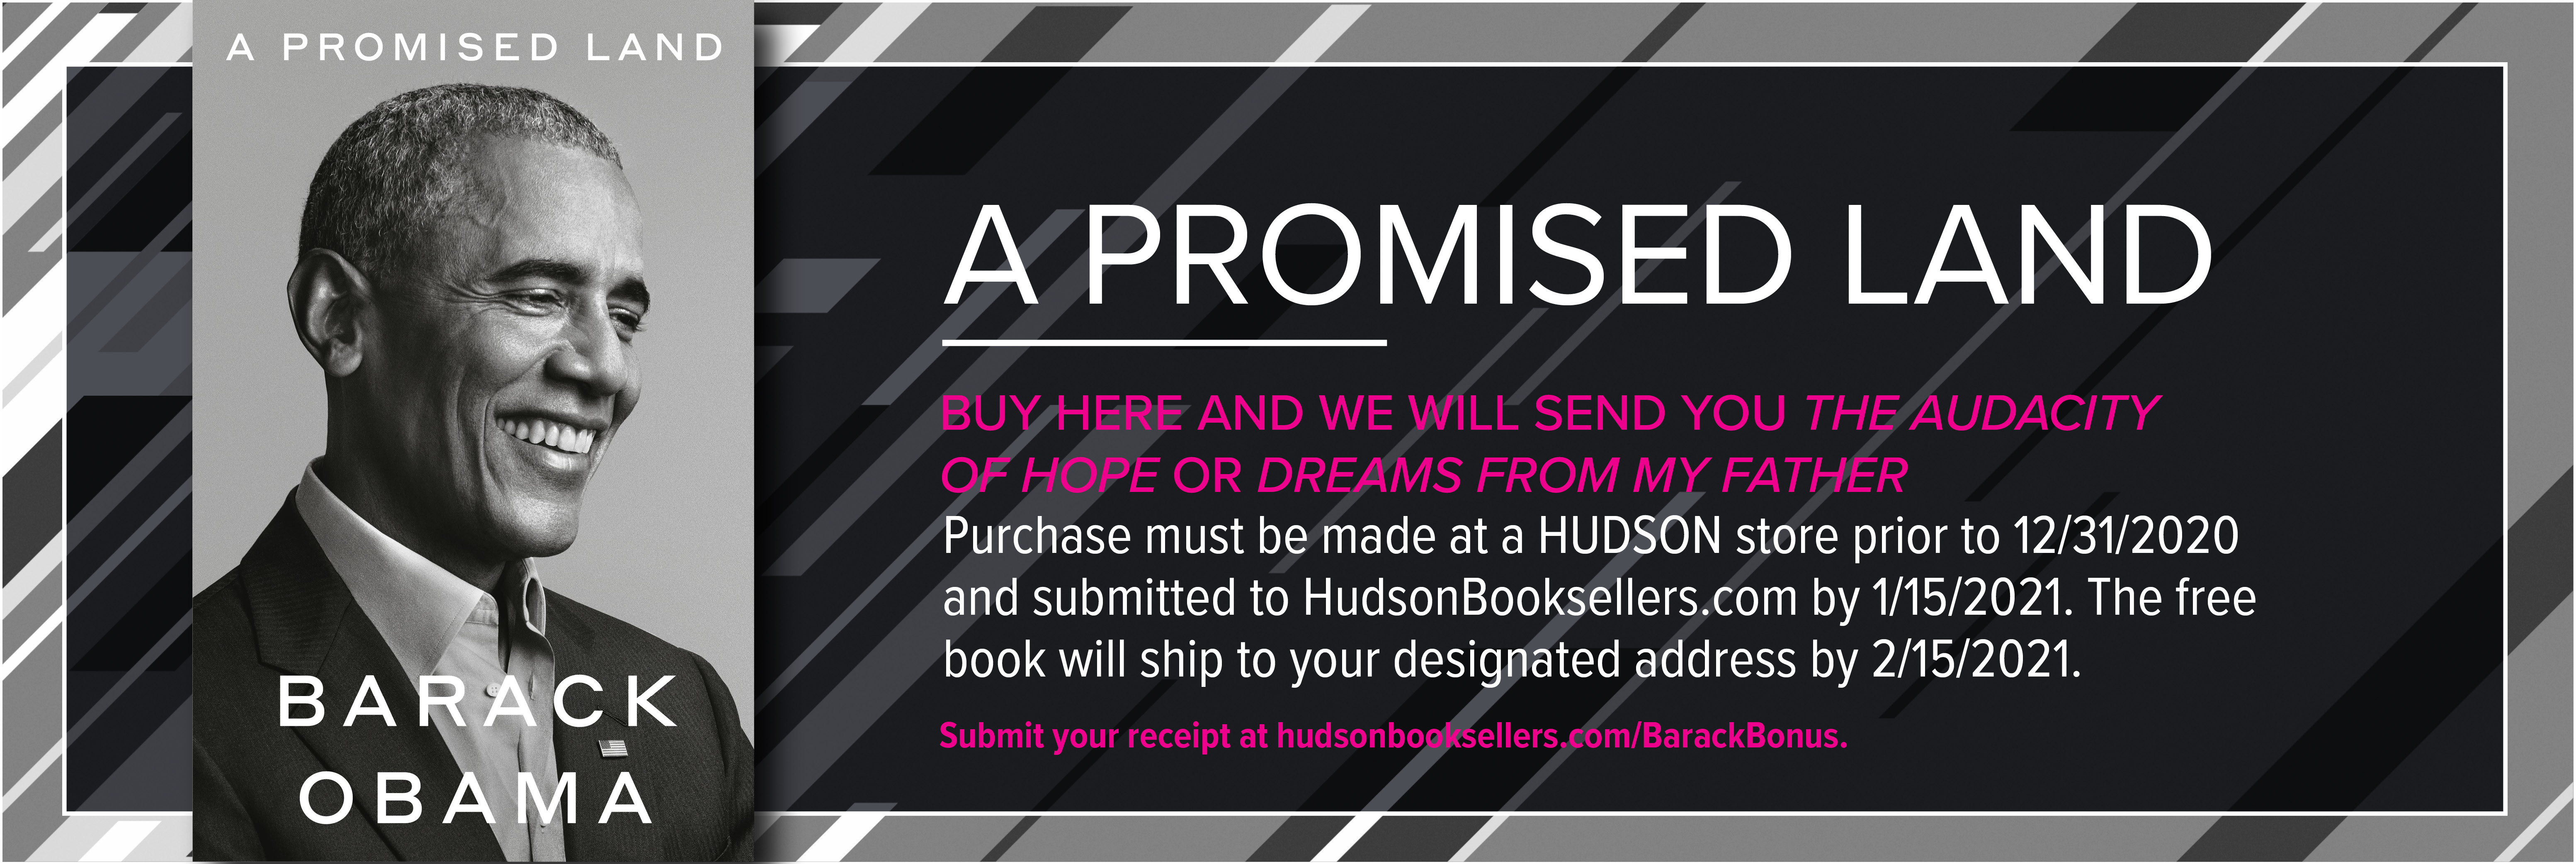 A Promised Land Free Book Offer